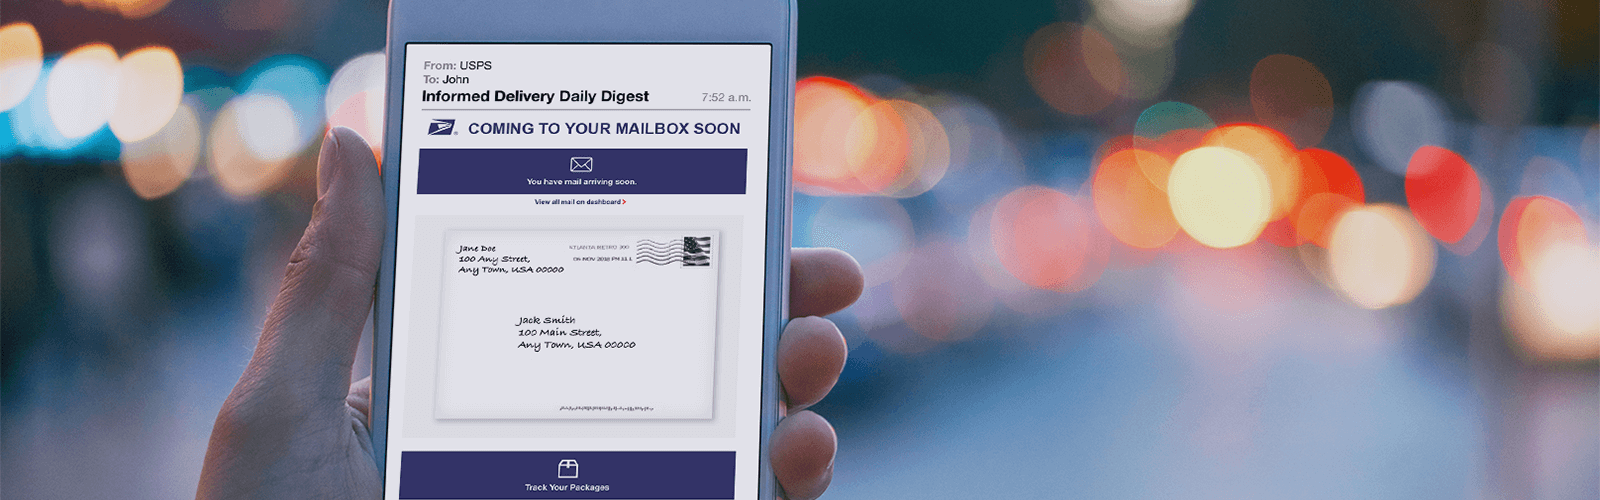 A mobile phone showing an email interface for the USPS Informed Delivery Daily Digest.